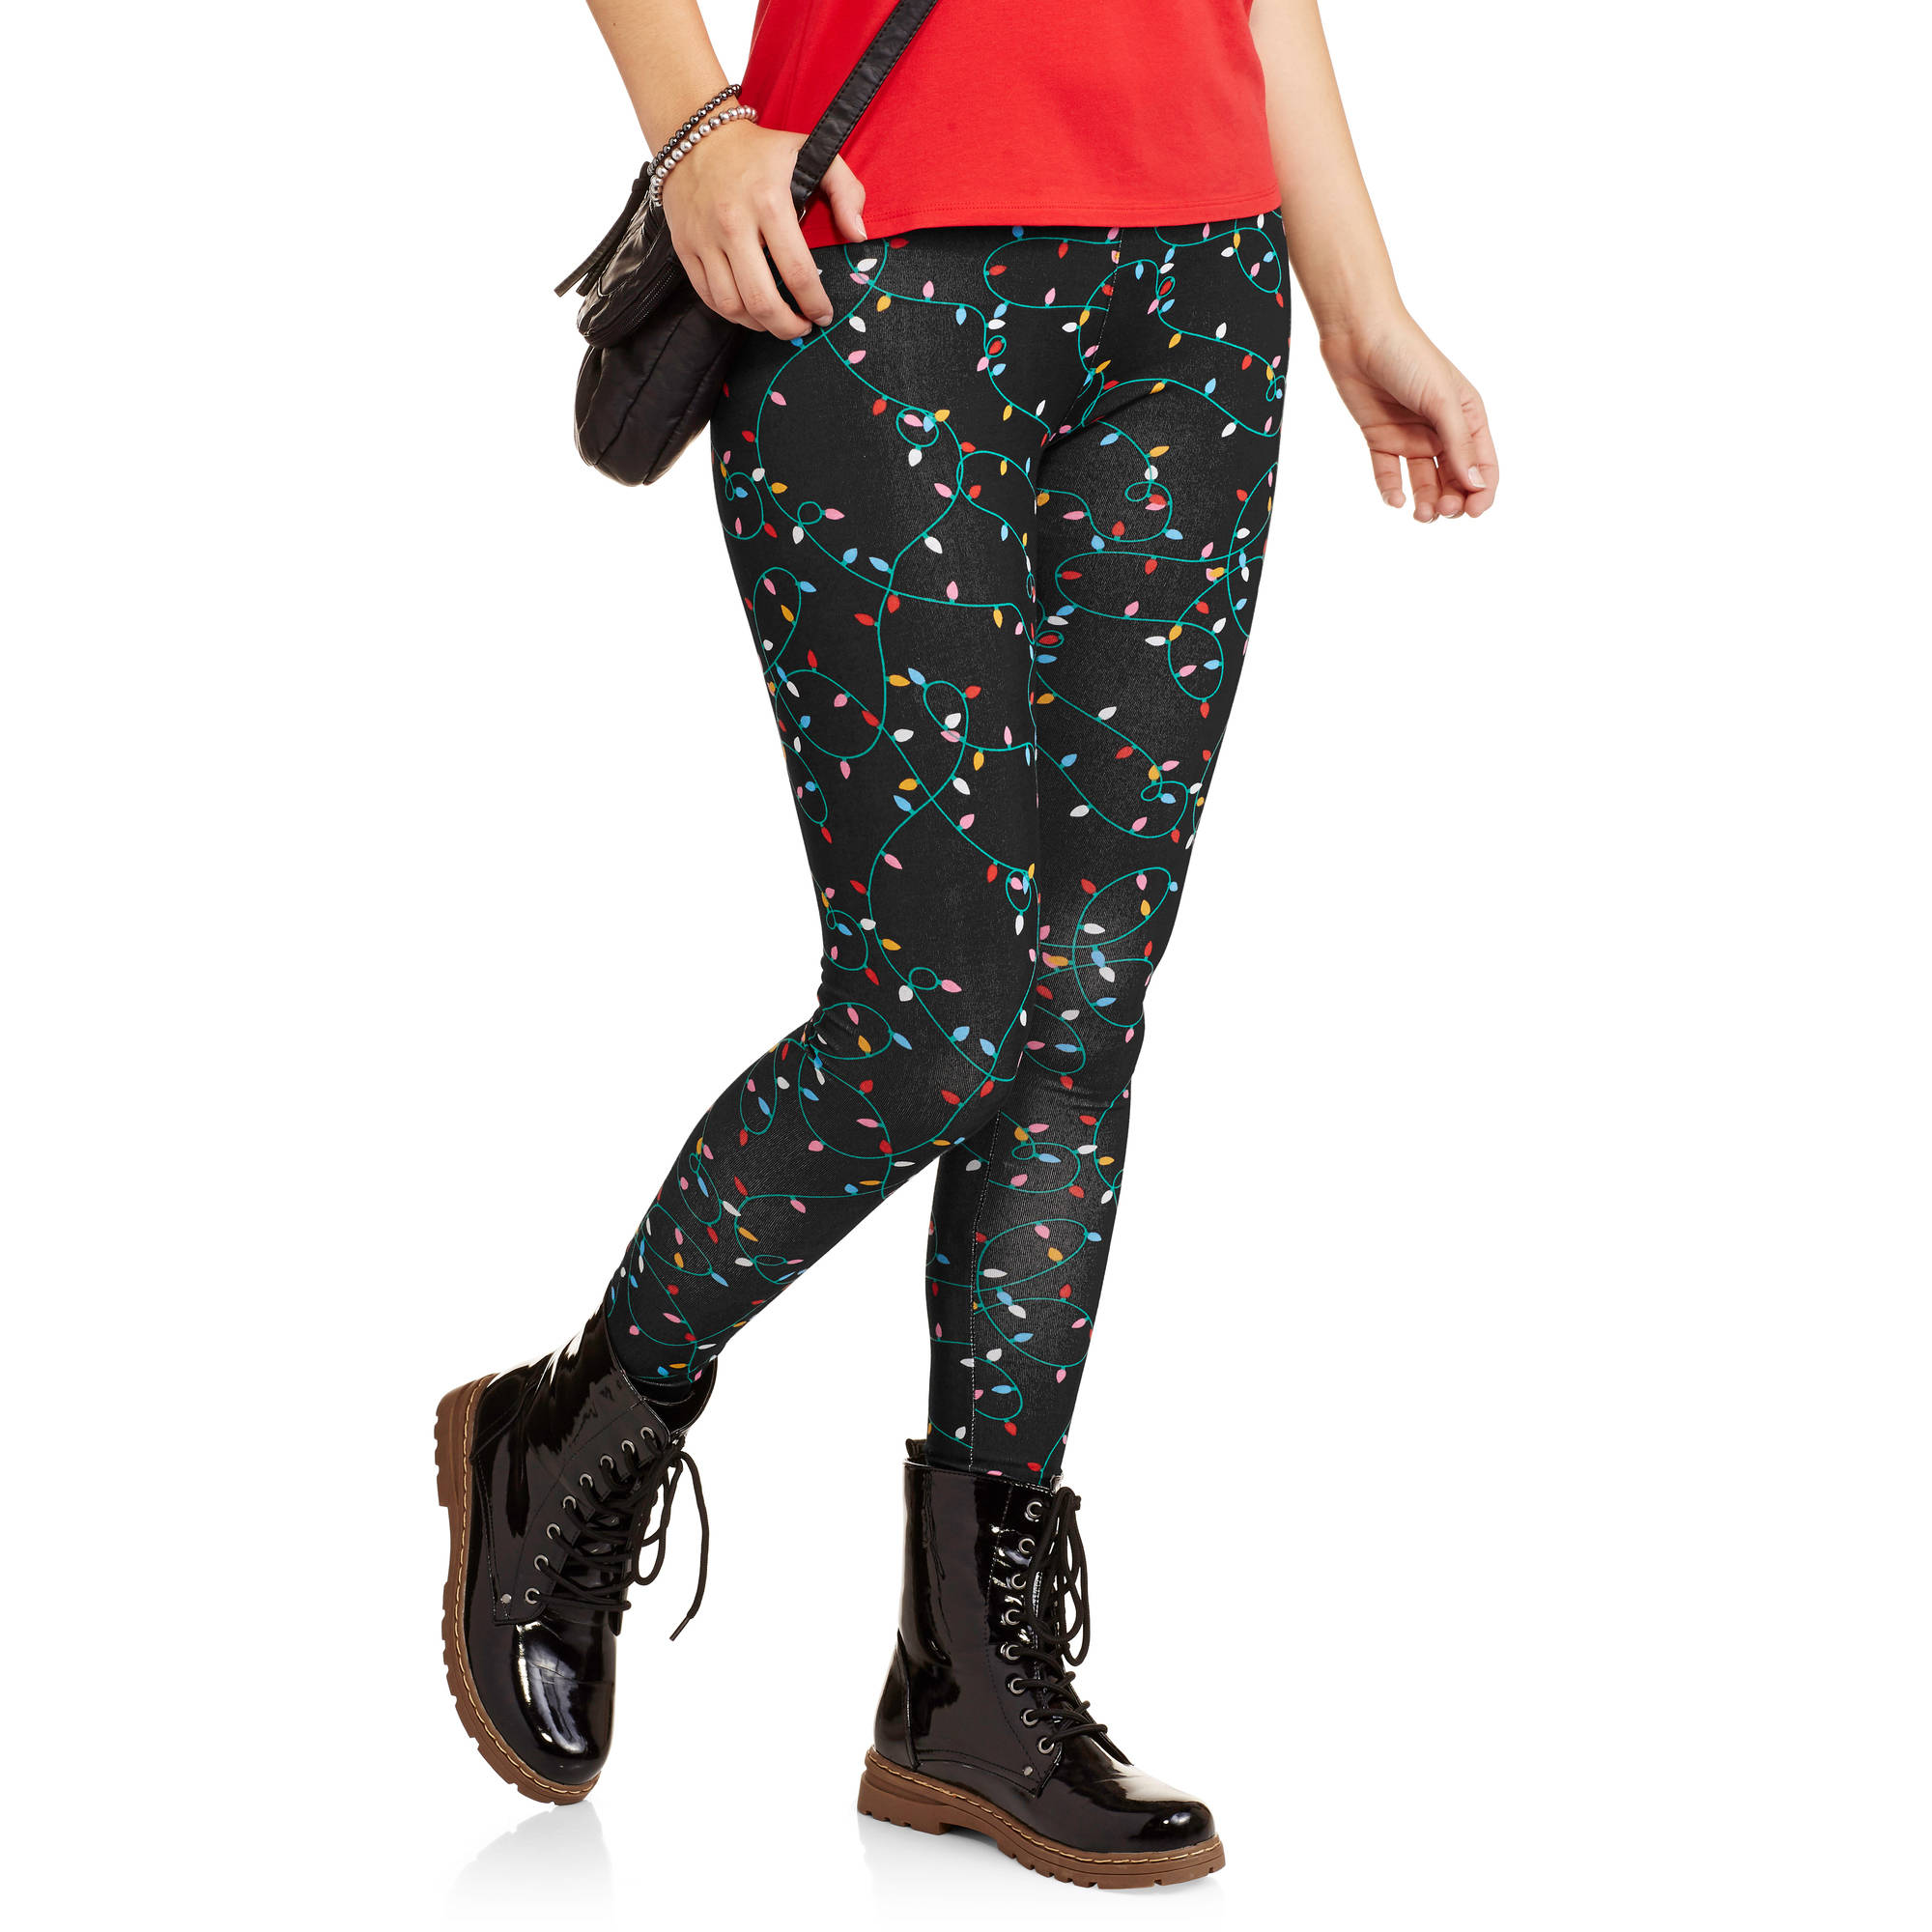 Faded Glory Women's Light Print Legging